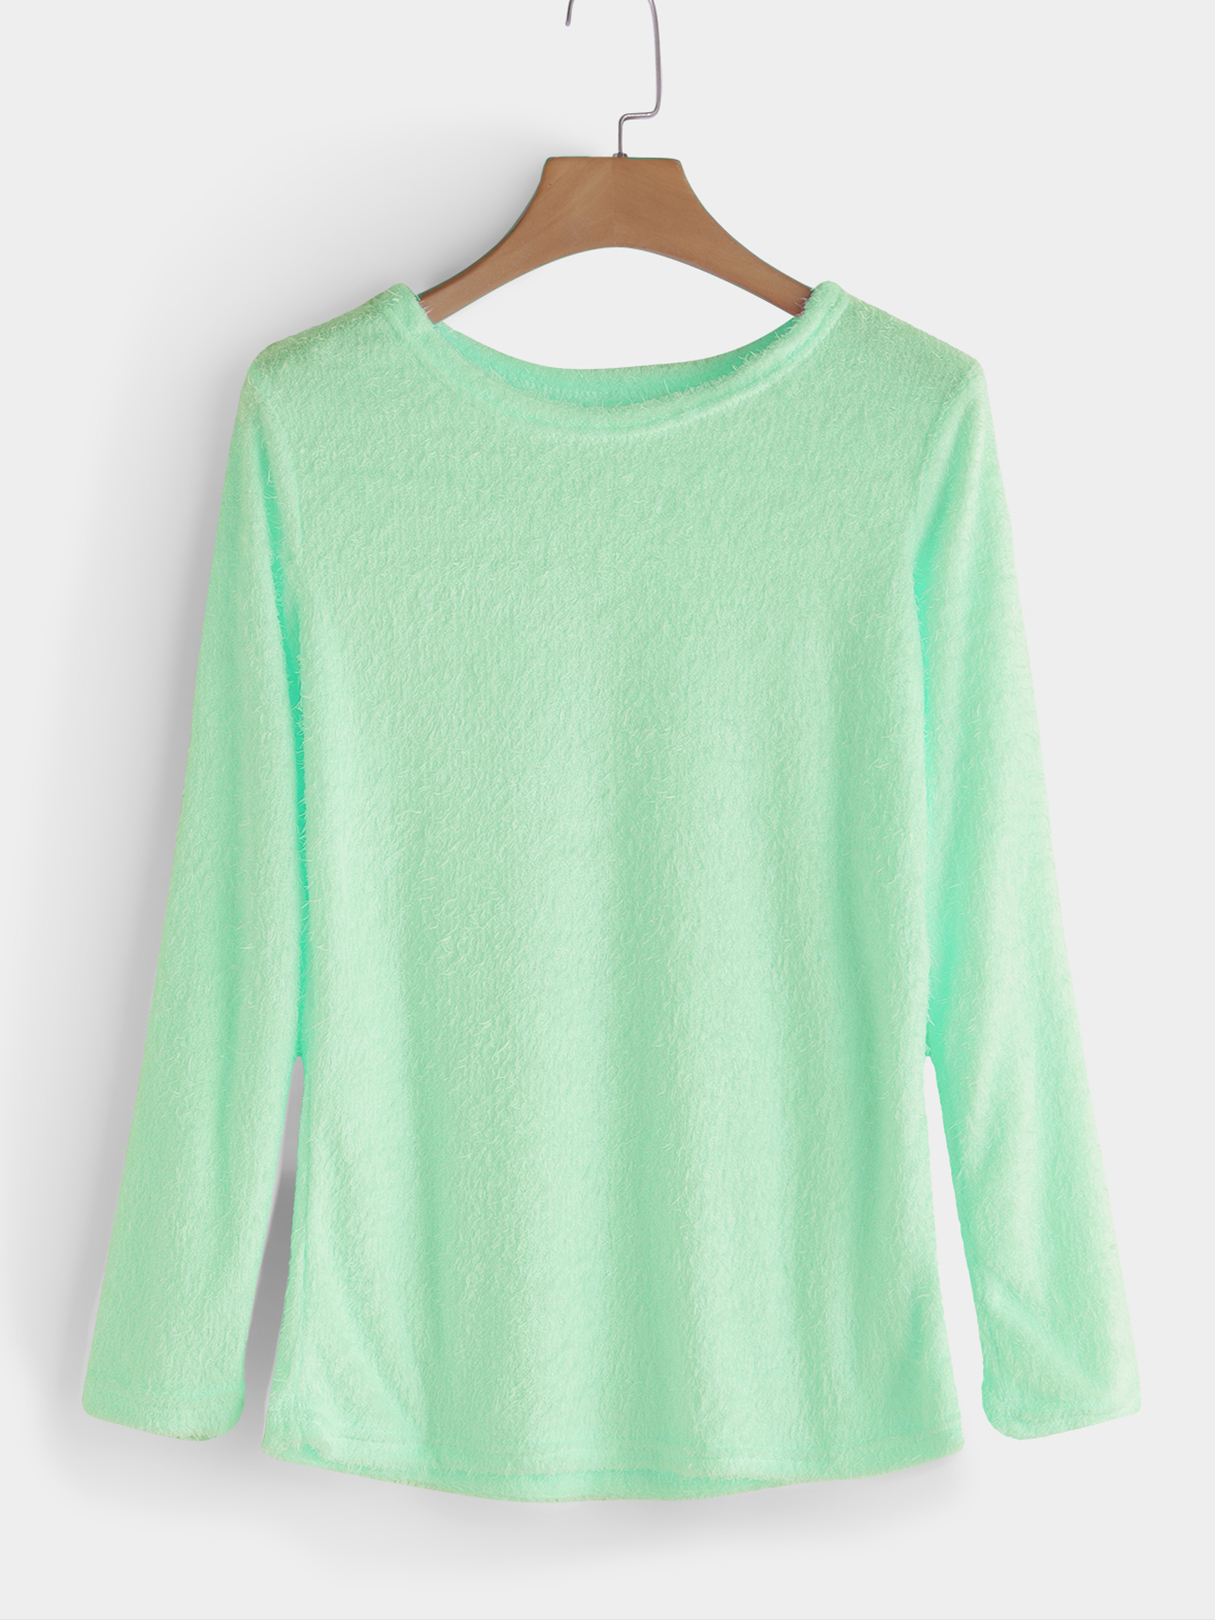 Aquamarine Casual Round Neck Long Sleeves Fuzzy T-shirt